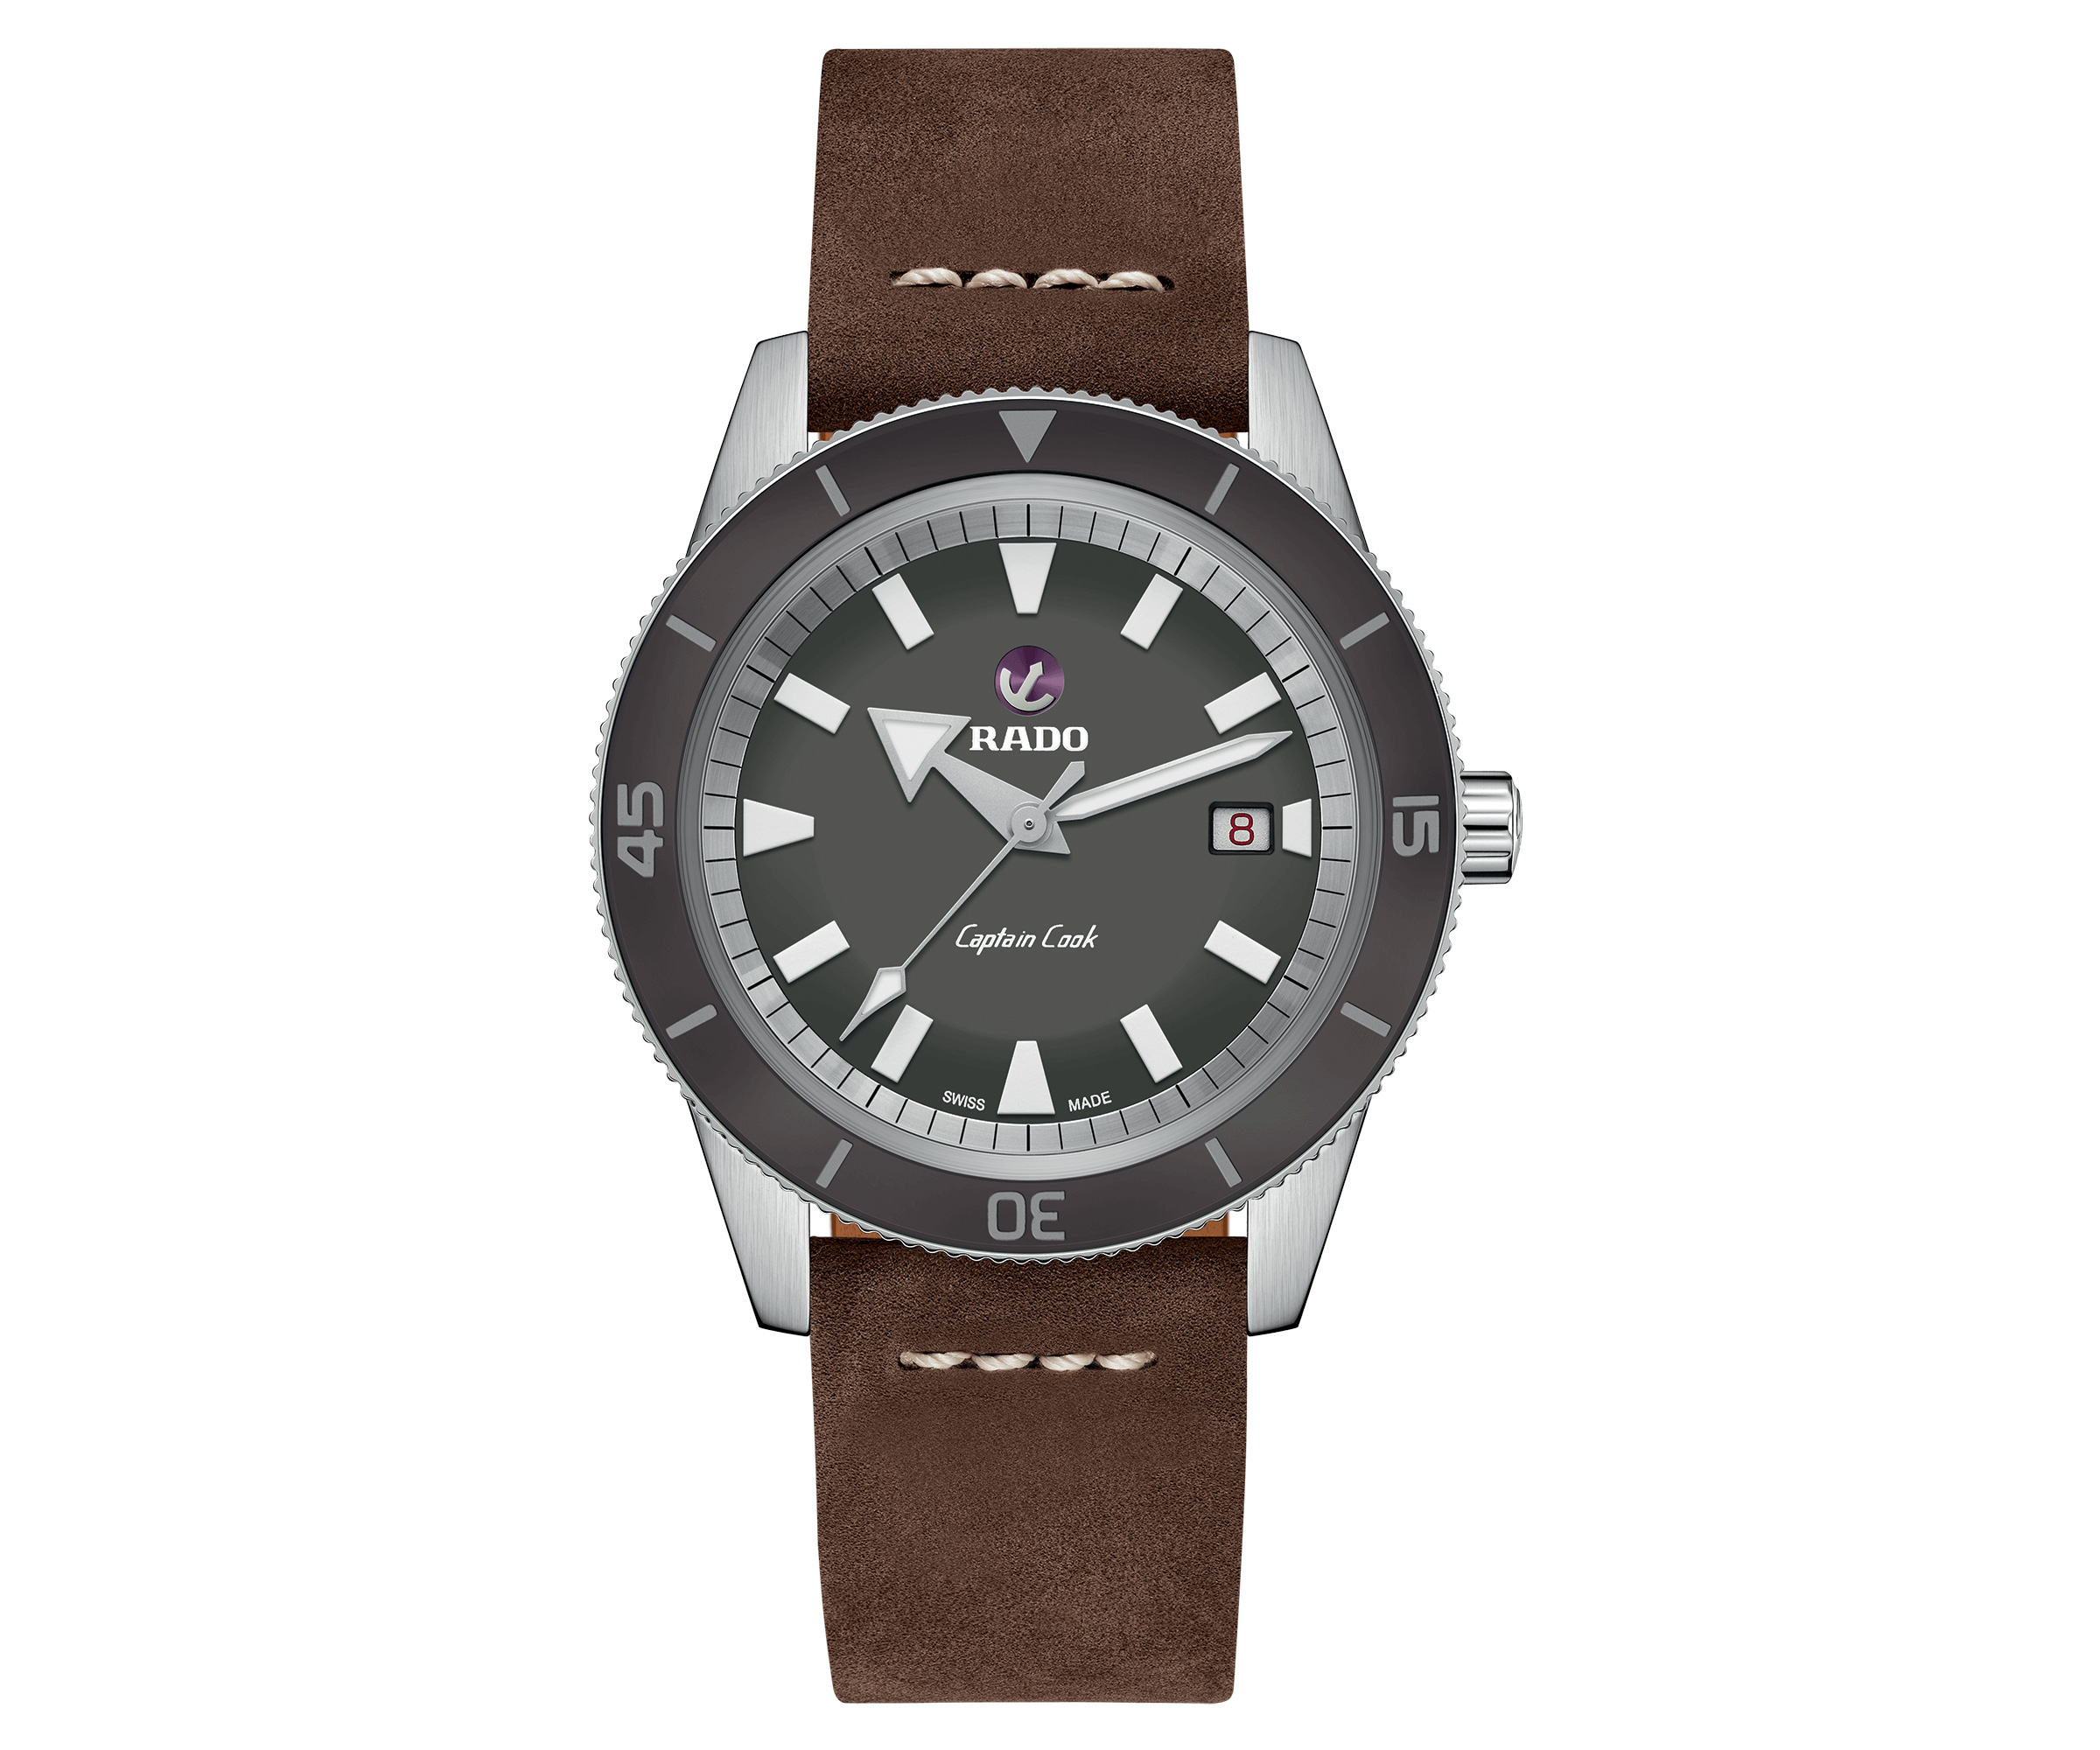 Rado Introduces Captain Hook Automatic Diver's Watch at werd.com